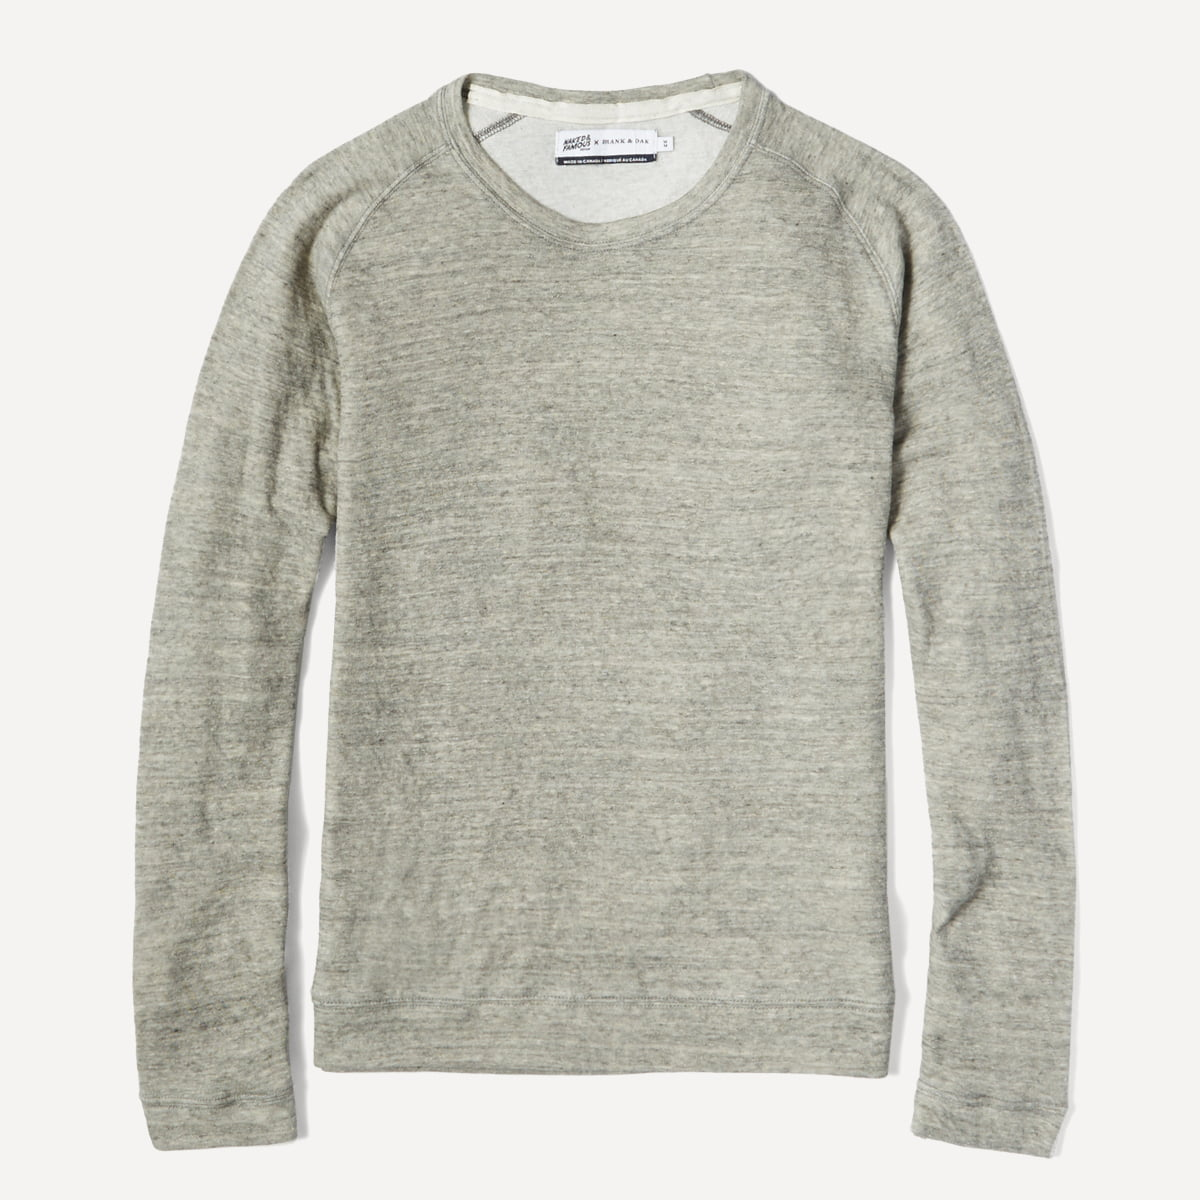 Naked & Famous x Frank & Oak Double-Faced Raglan Long Sleeve in Grey